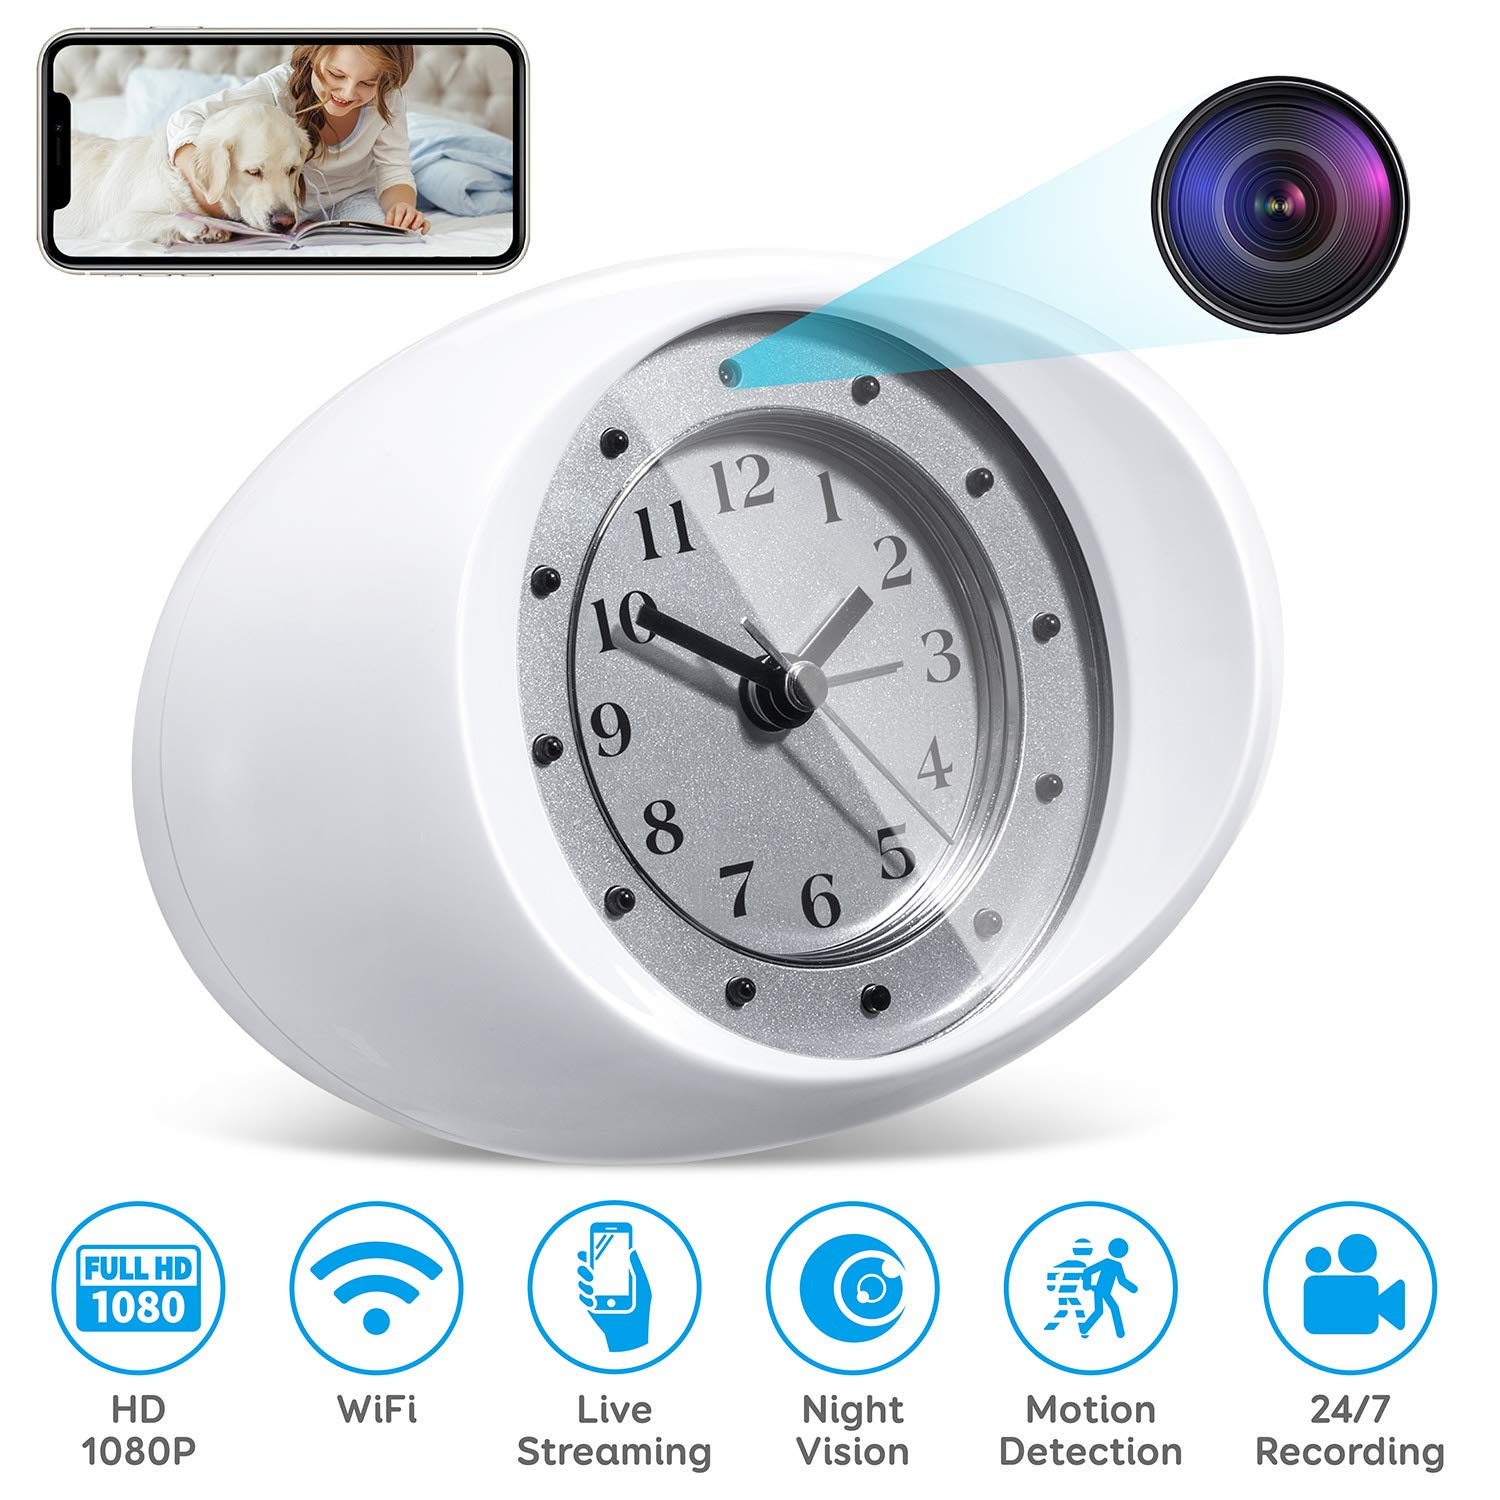 Omples Hidden Camera Spy Camera Wireless Security Nanny Cam with 1080P Full HD, WiFi, Night Vision, Motion Detection, Cell Phone App, No Sound Recording by Omples